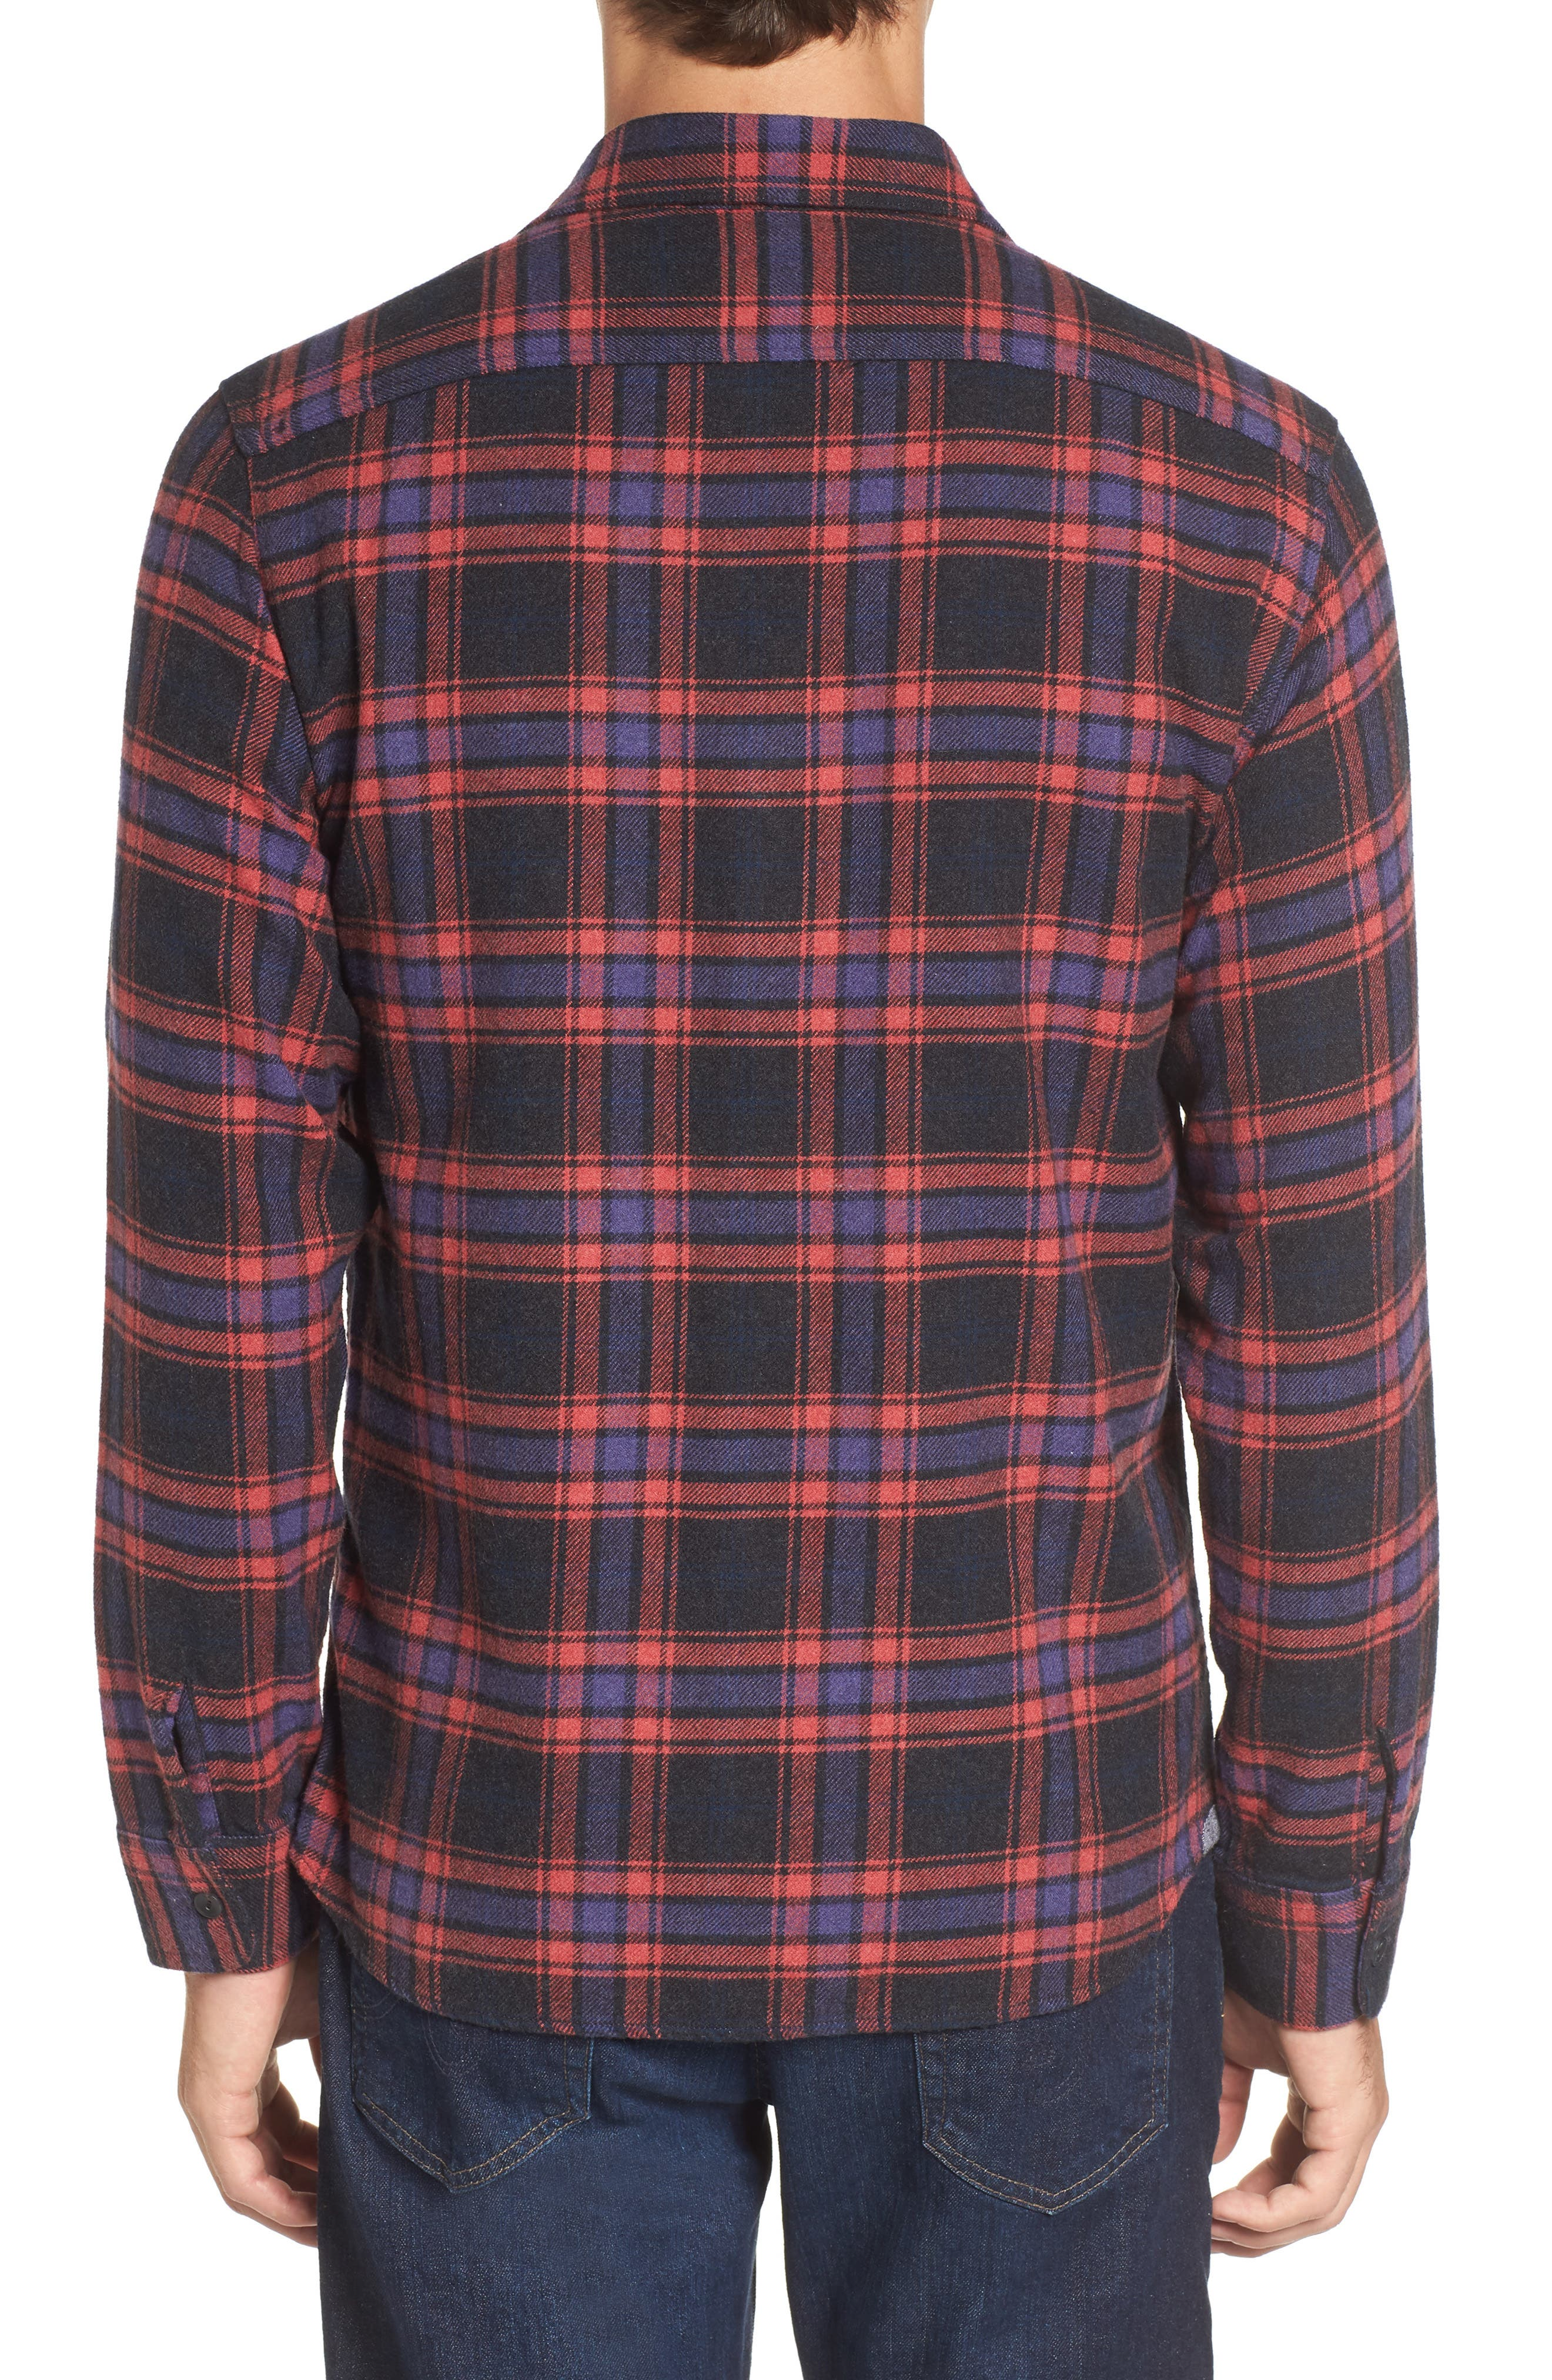 Chaucer Heritage Flannel Shirt,                             Alternate thumbnail 2, color,                             641